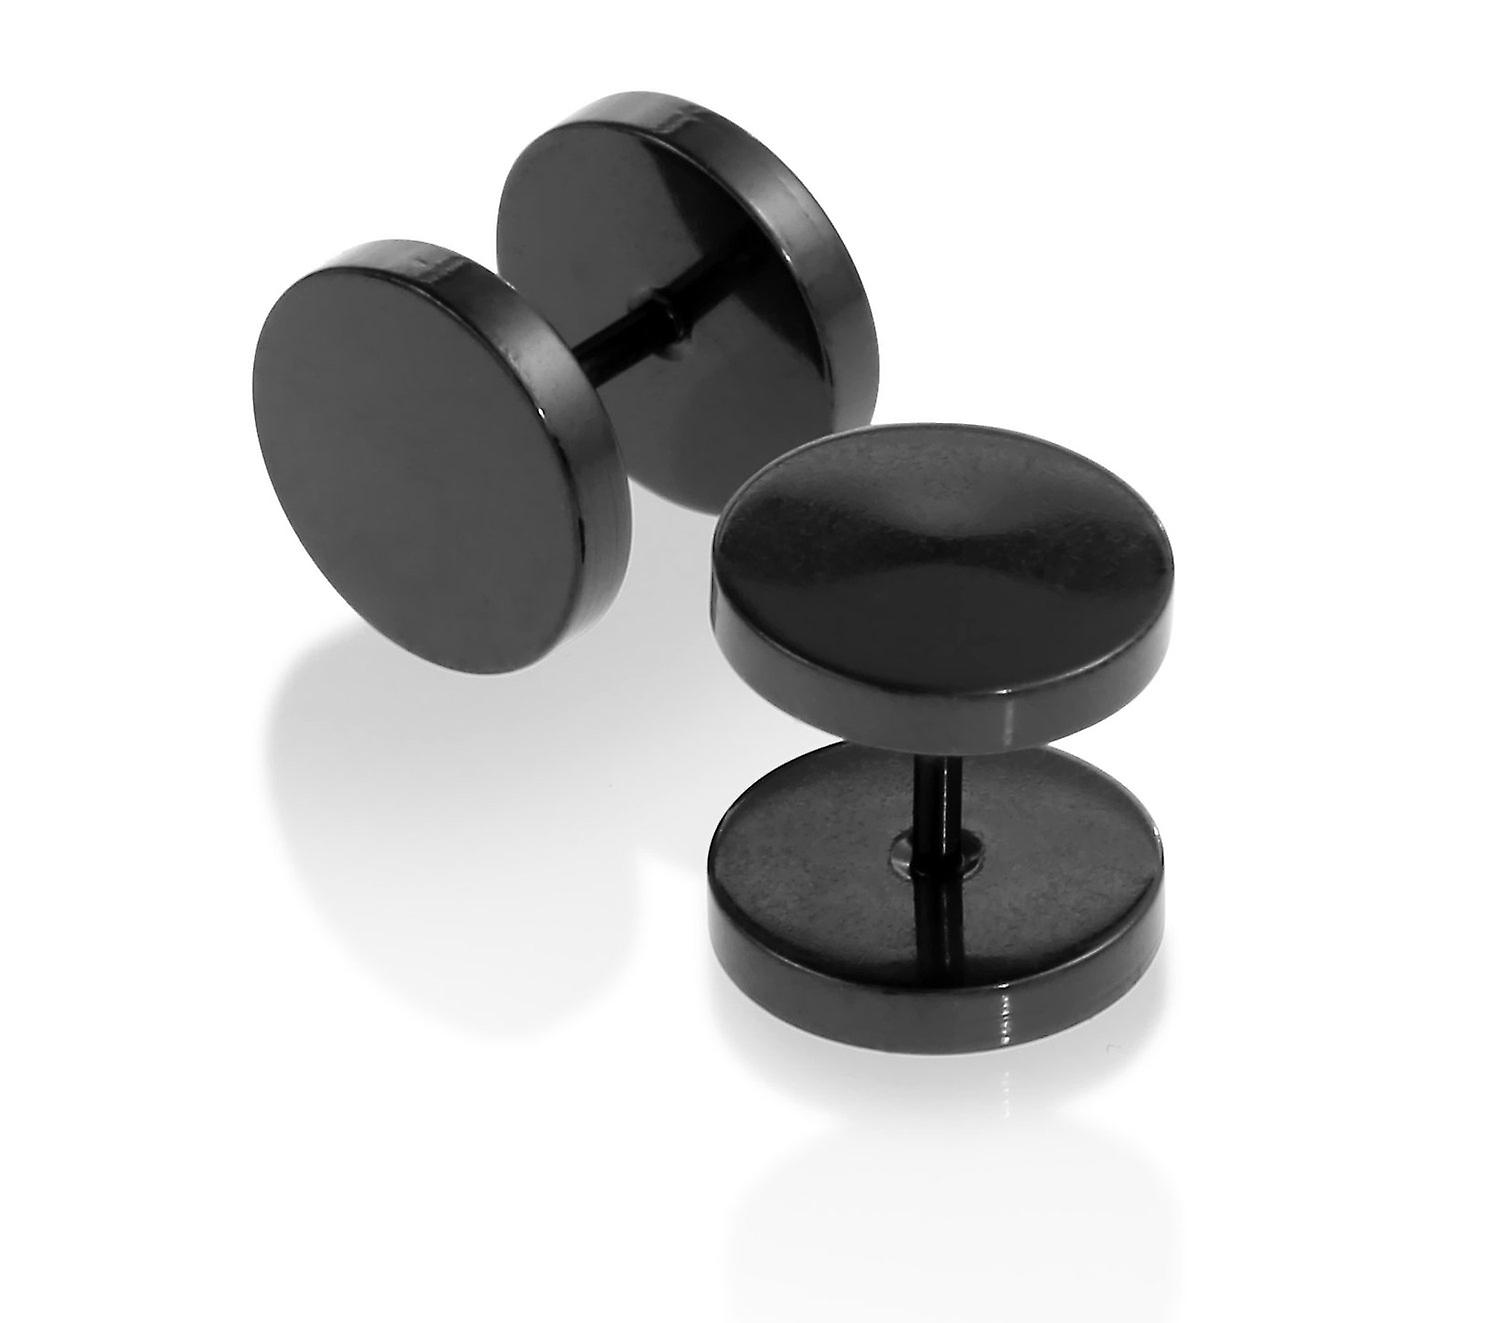 Black Stainless Steel Illusion Tunnel Plugs Earrings Men Unisex 5mm